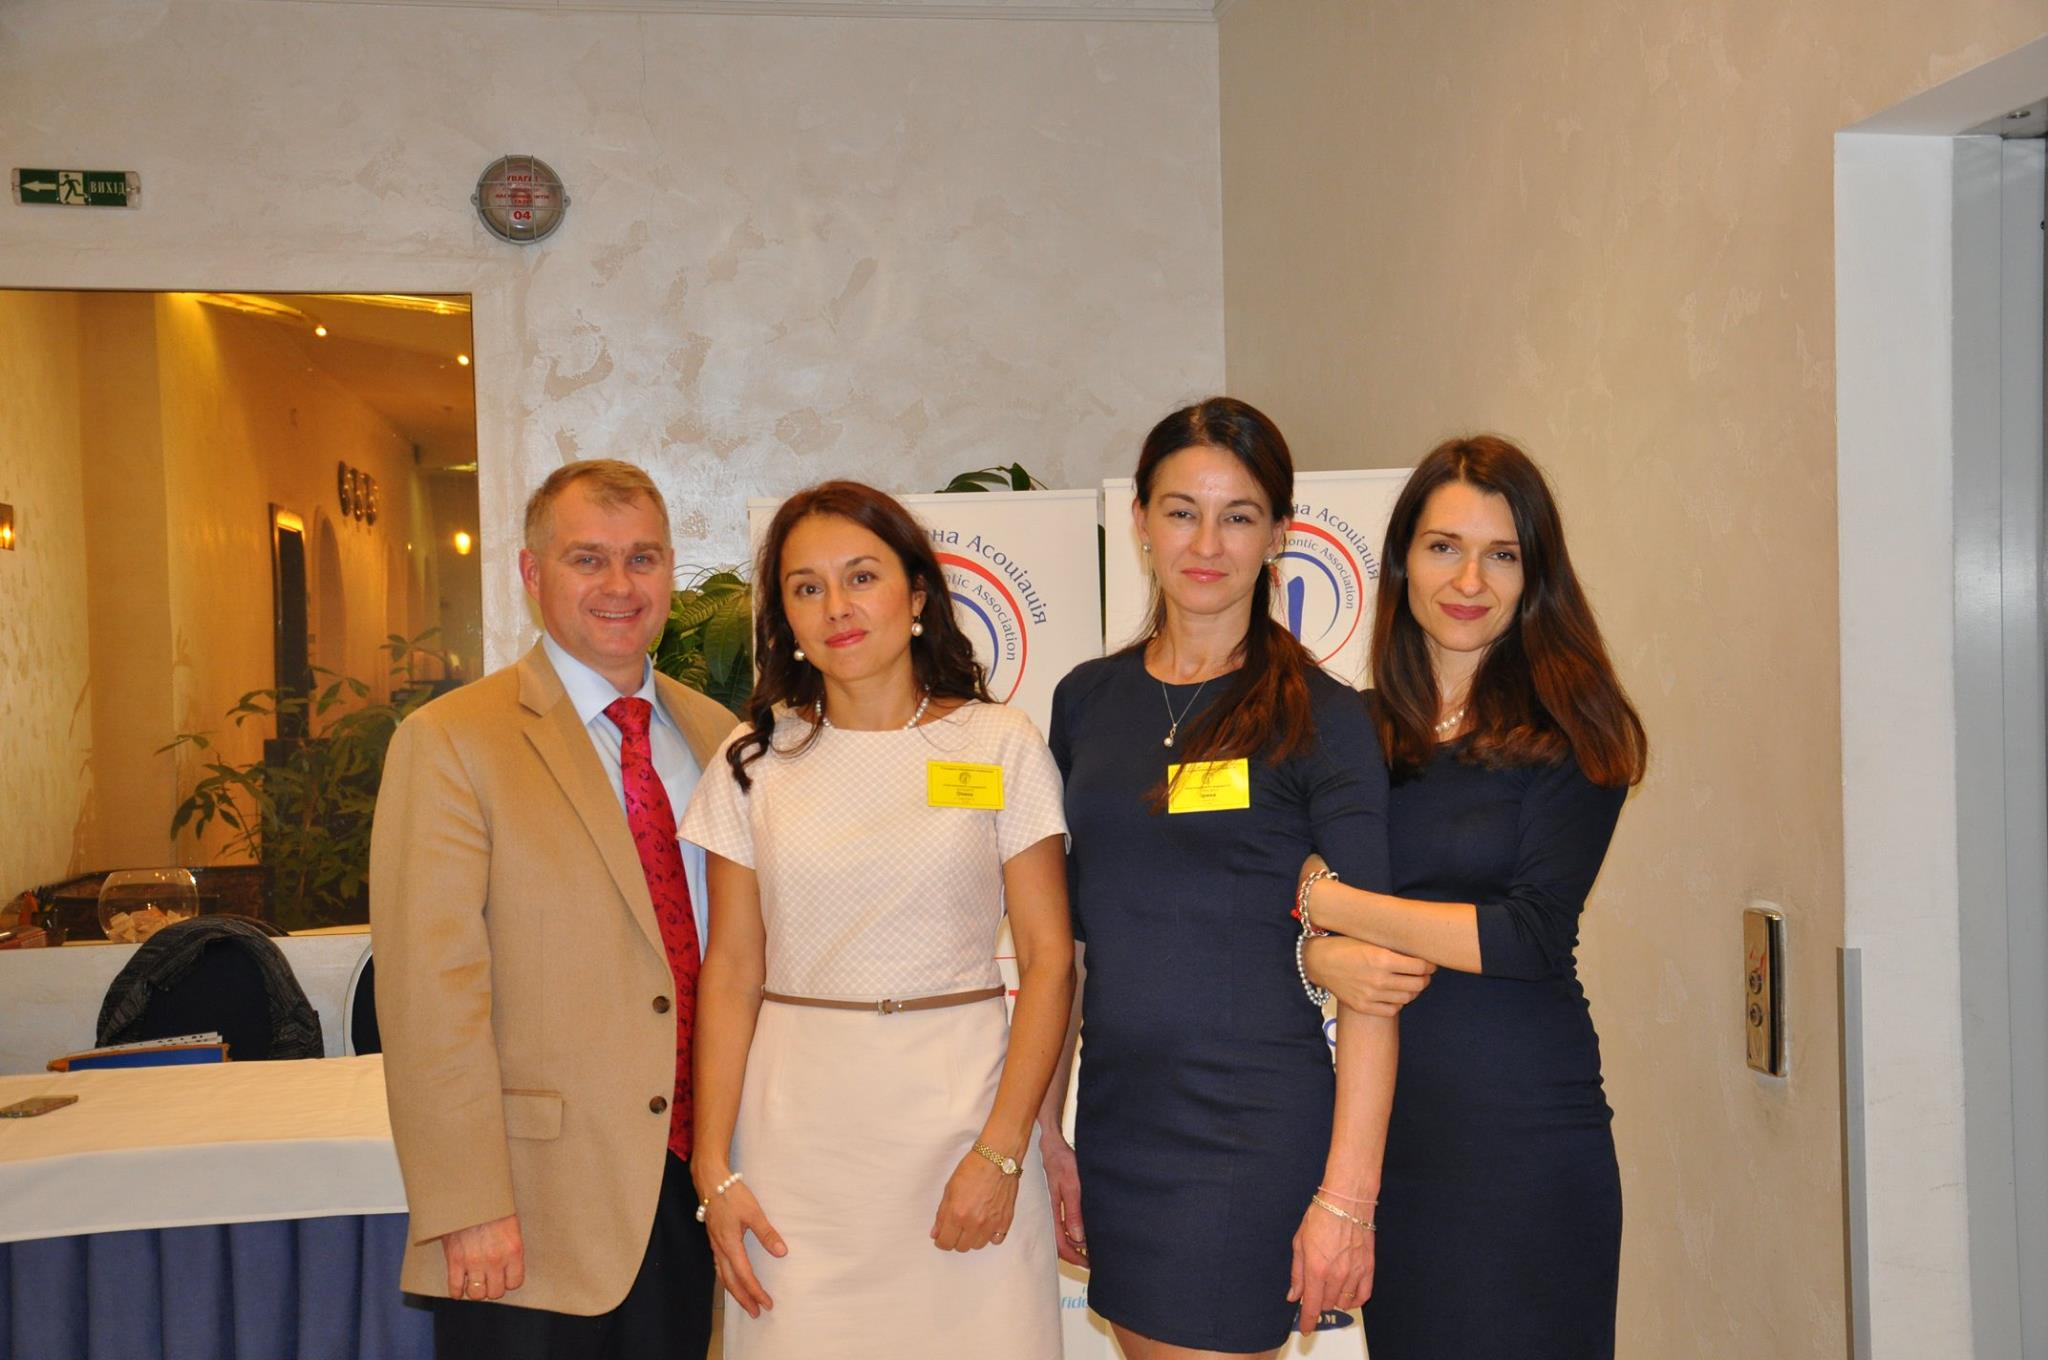 Thank you for attending the XV International Endodontic Conference in Ukraine